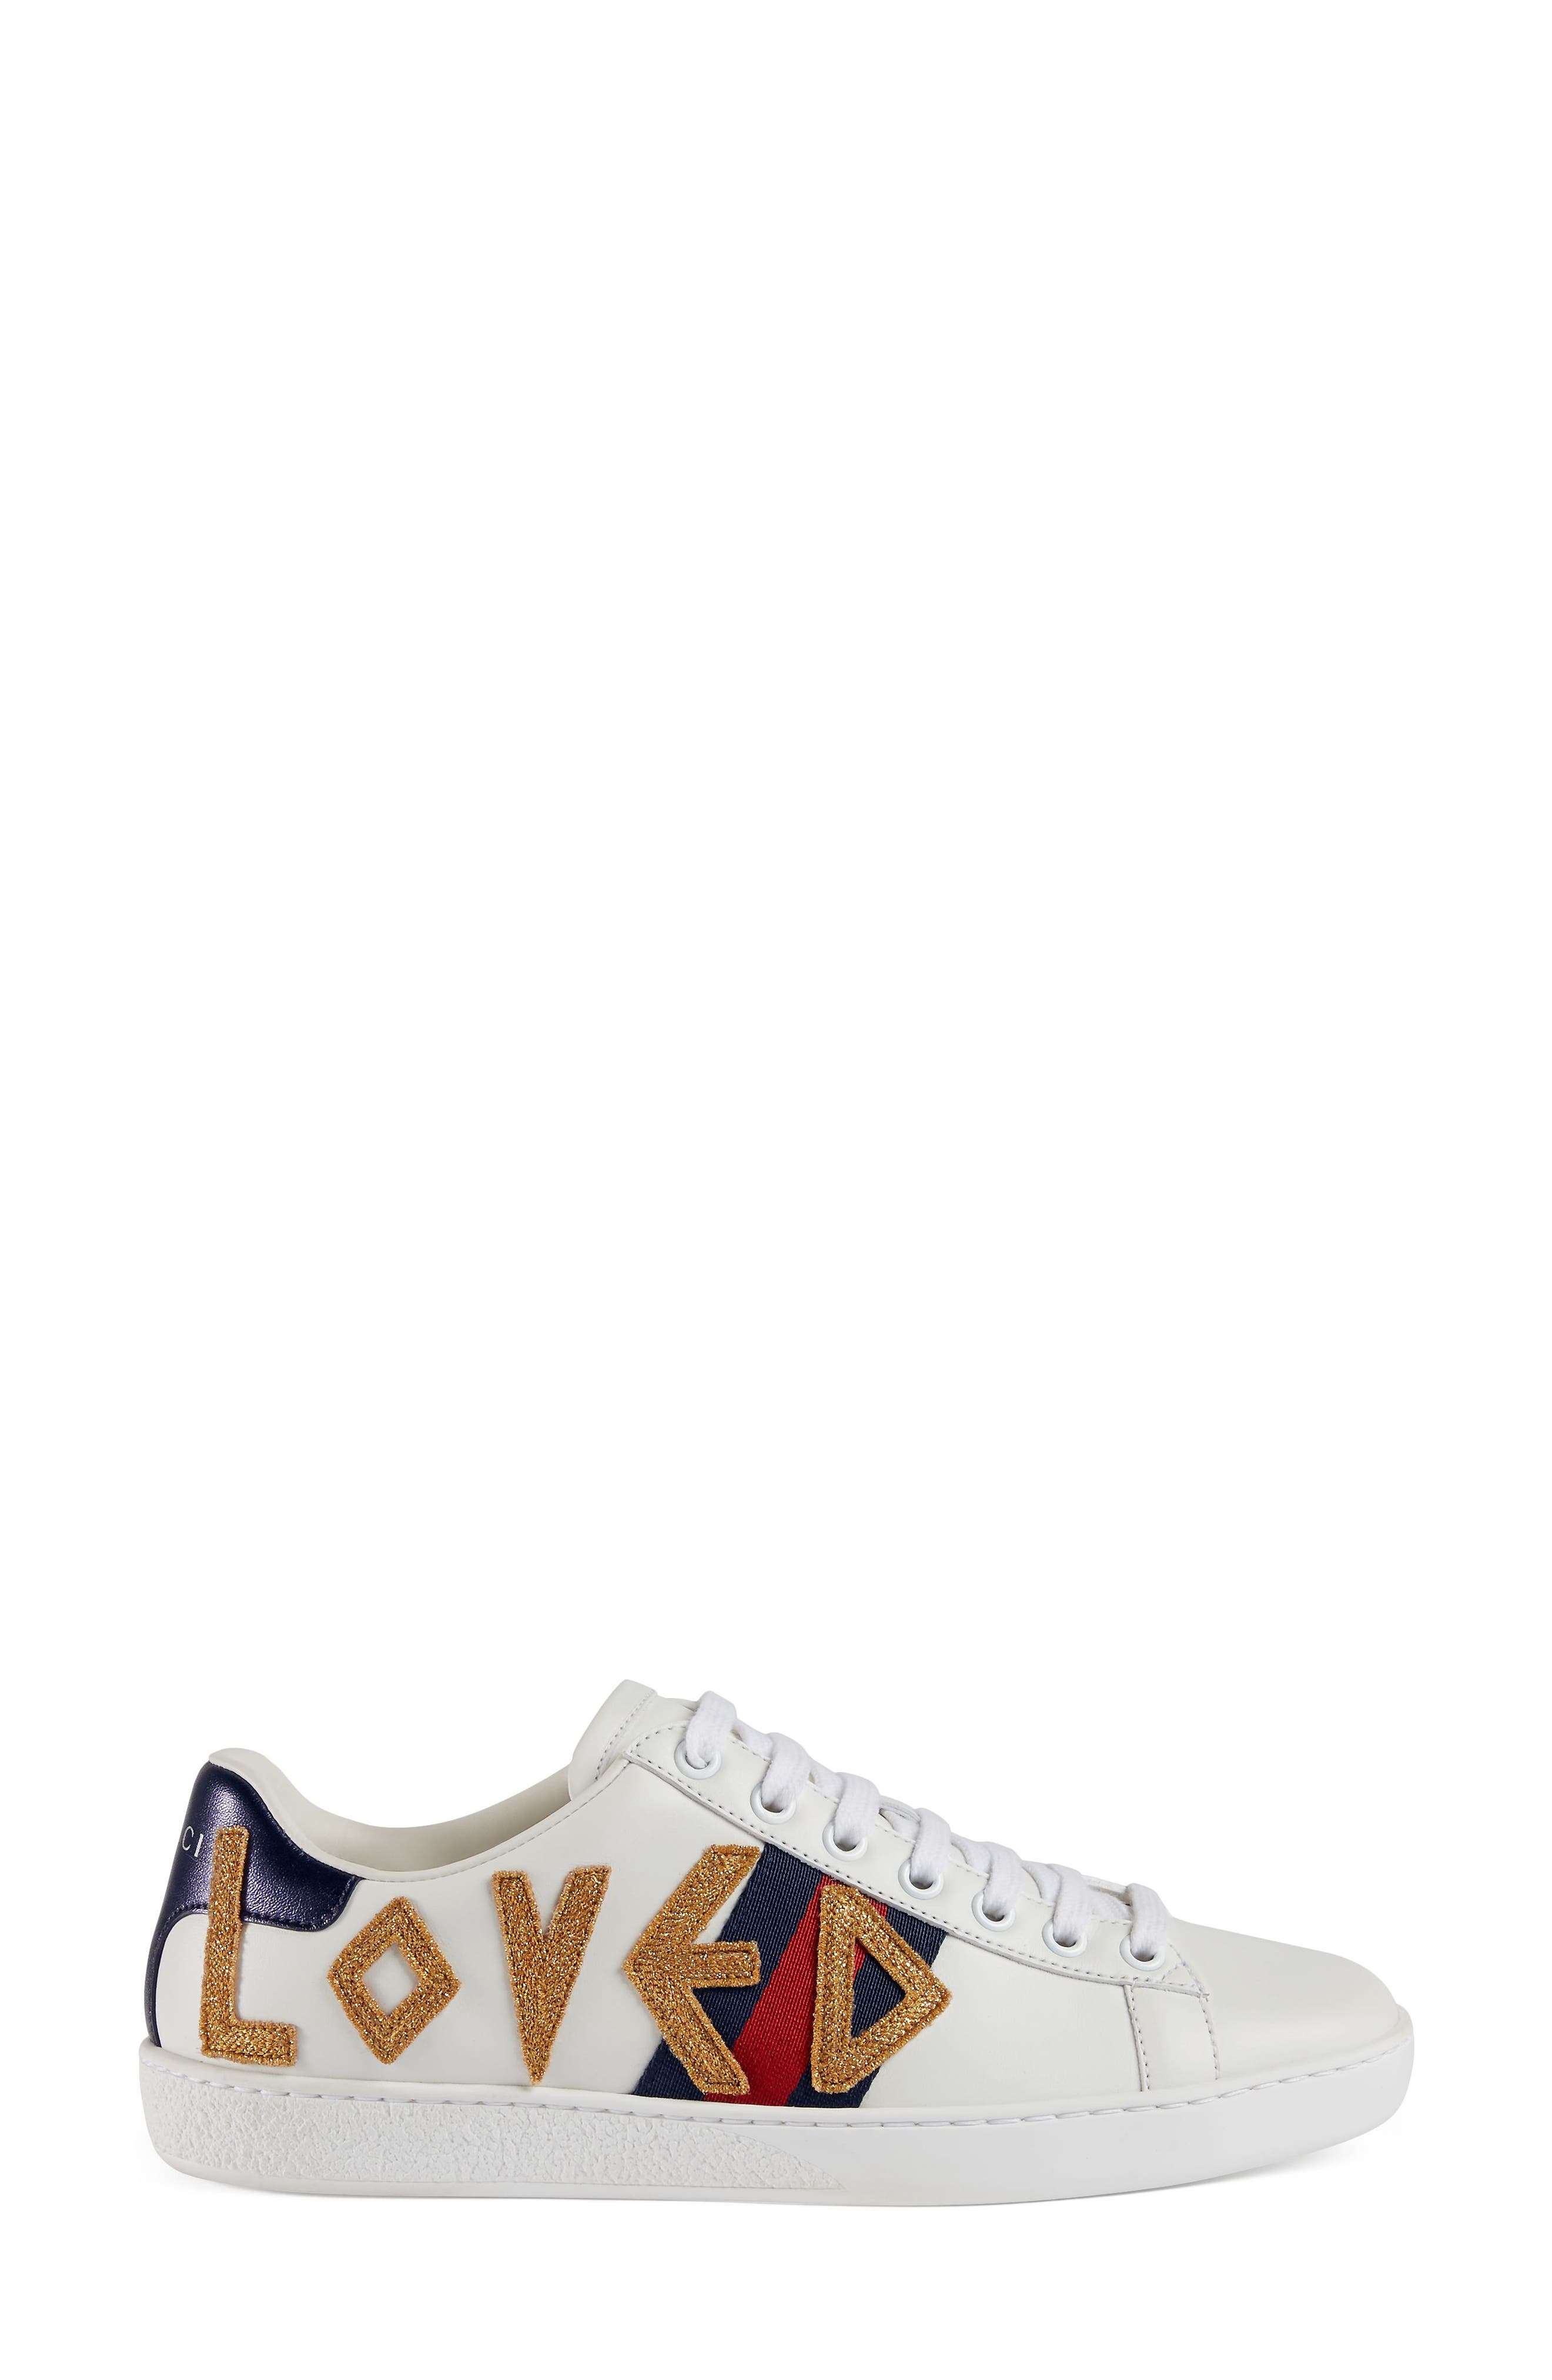 Alternate Image 2  - Gucci New Ace Loved Sneakers (Women)